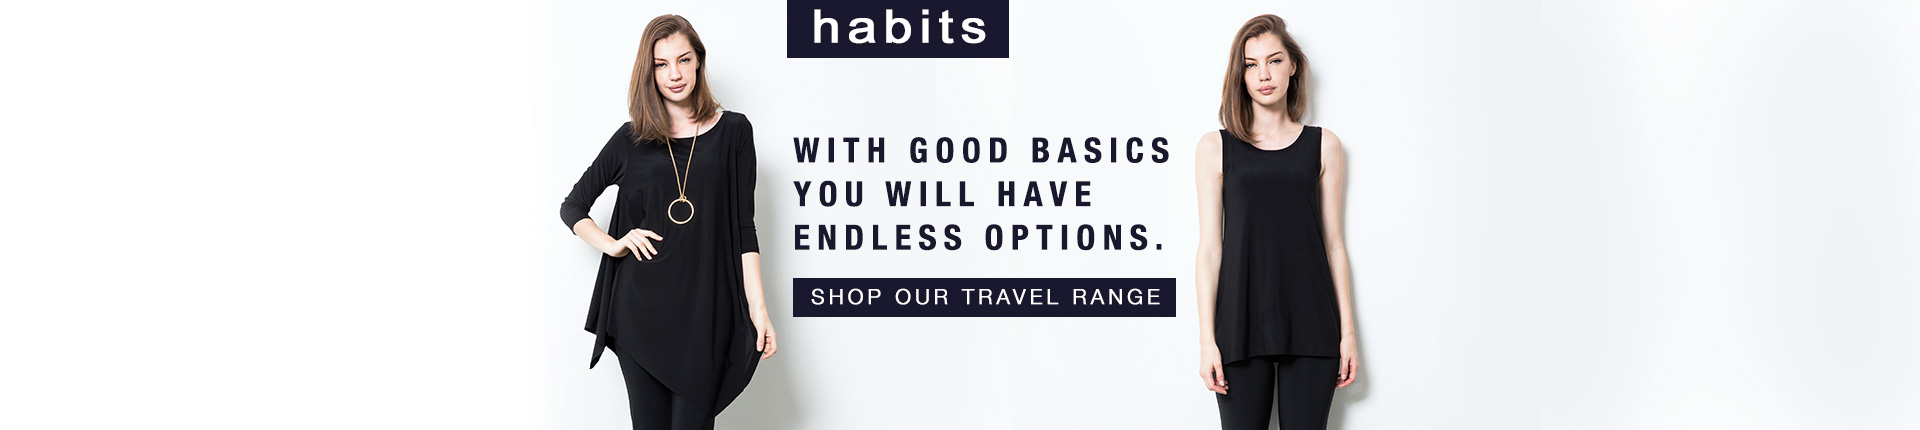 Habits Travel Range